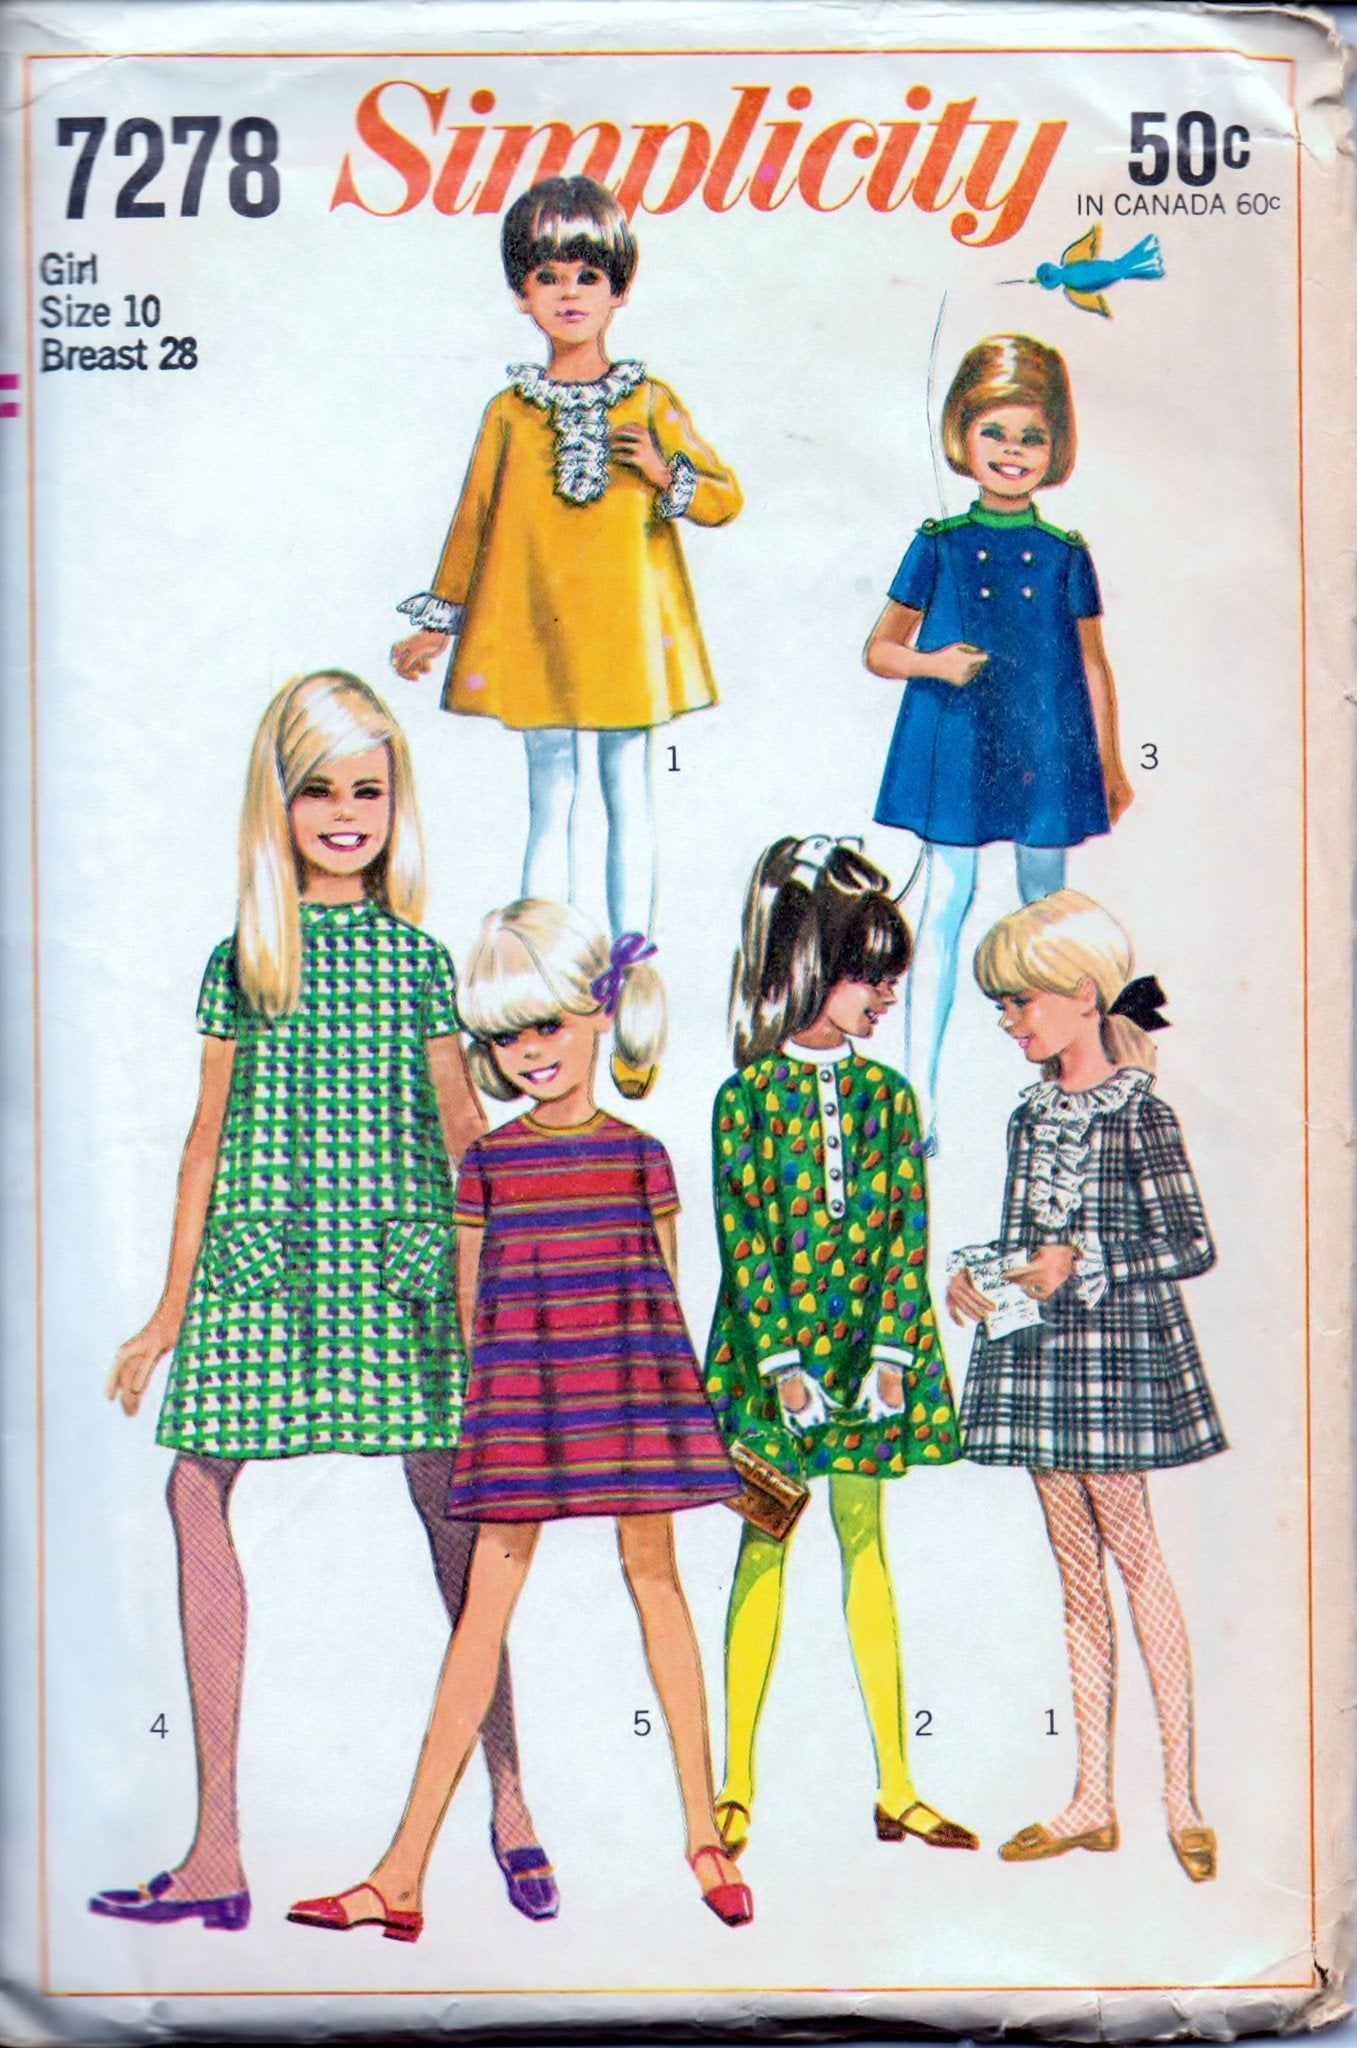 Simplicity 7278 Young Girls' Tent Dress with Detachable Neck Vintage 60's Sewing Pattern - VintageStitching - Vintage Sewing Patterns